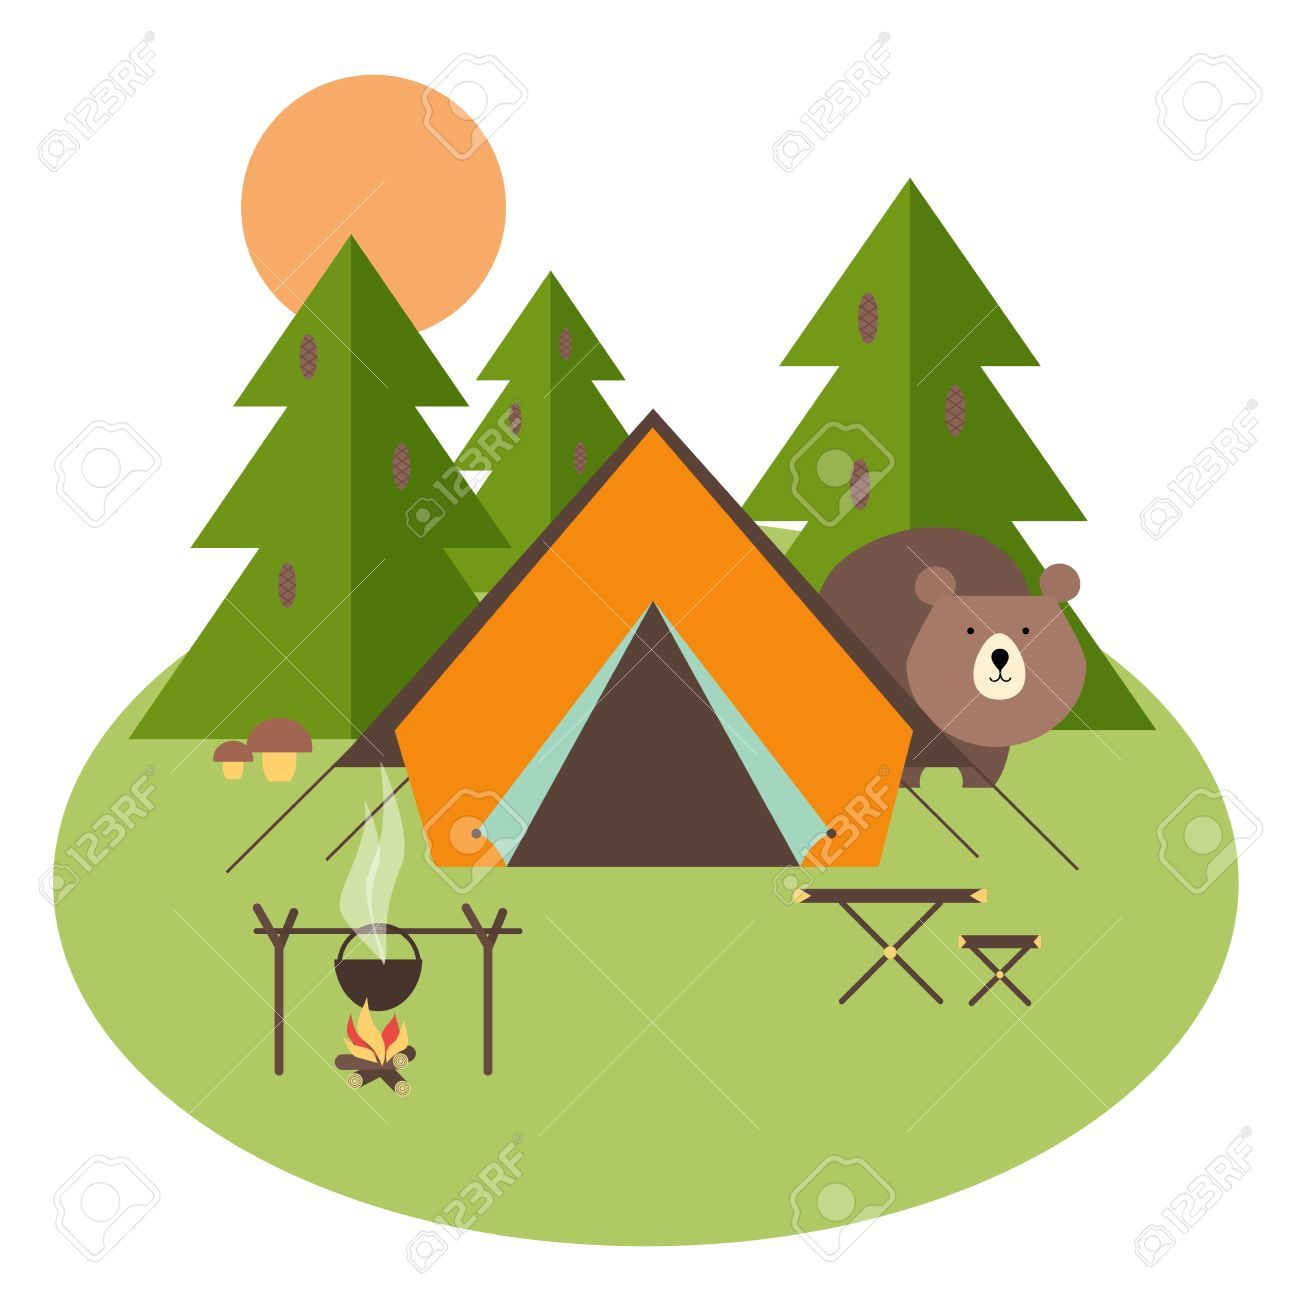 Camping Tent Stock Vector Illustration And Royalty Free Camping.